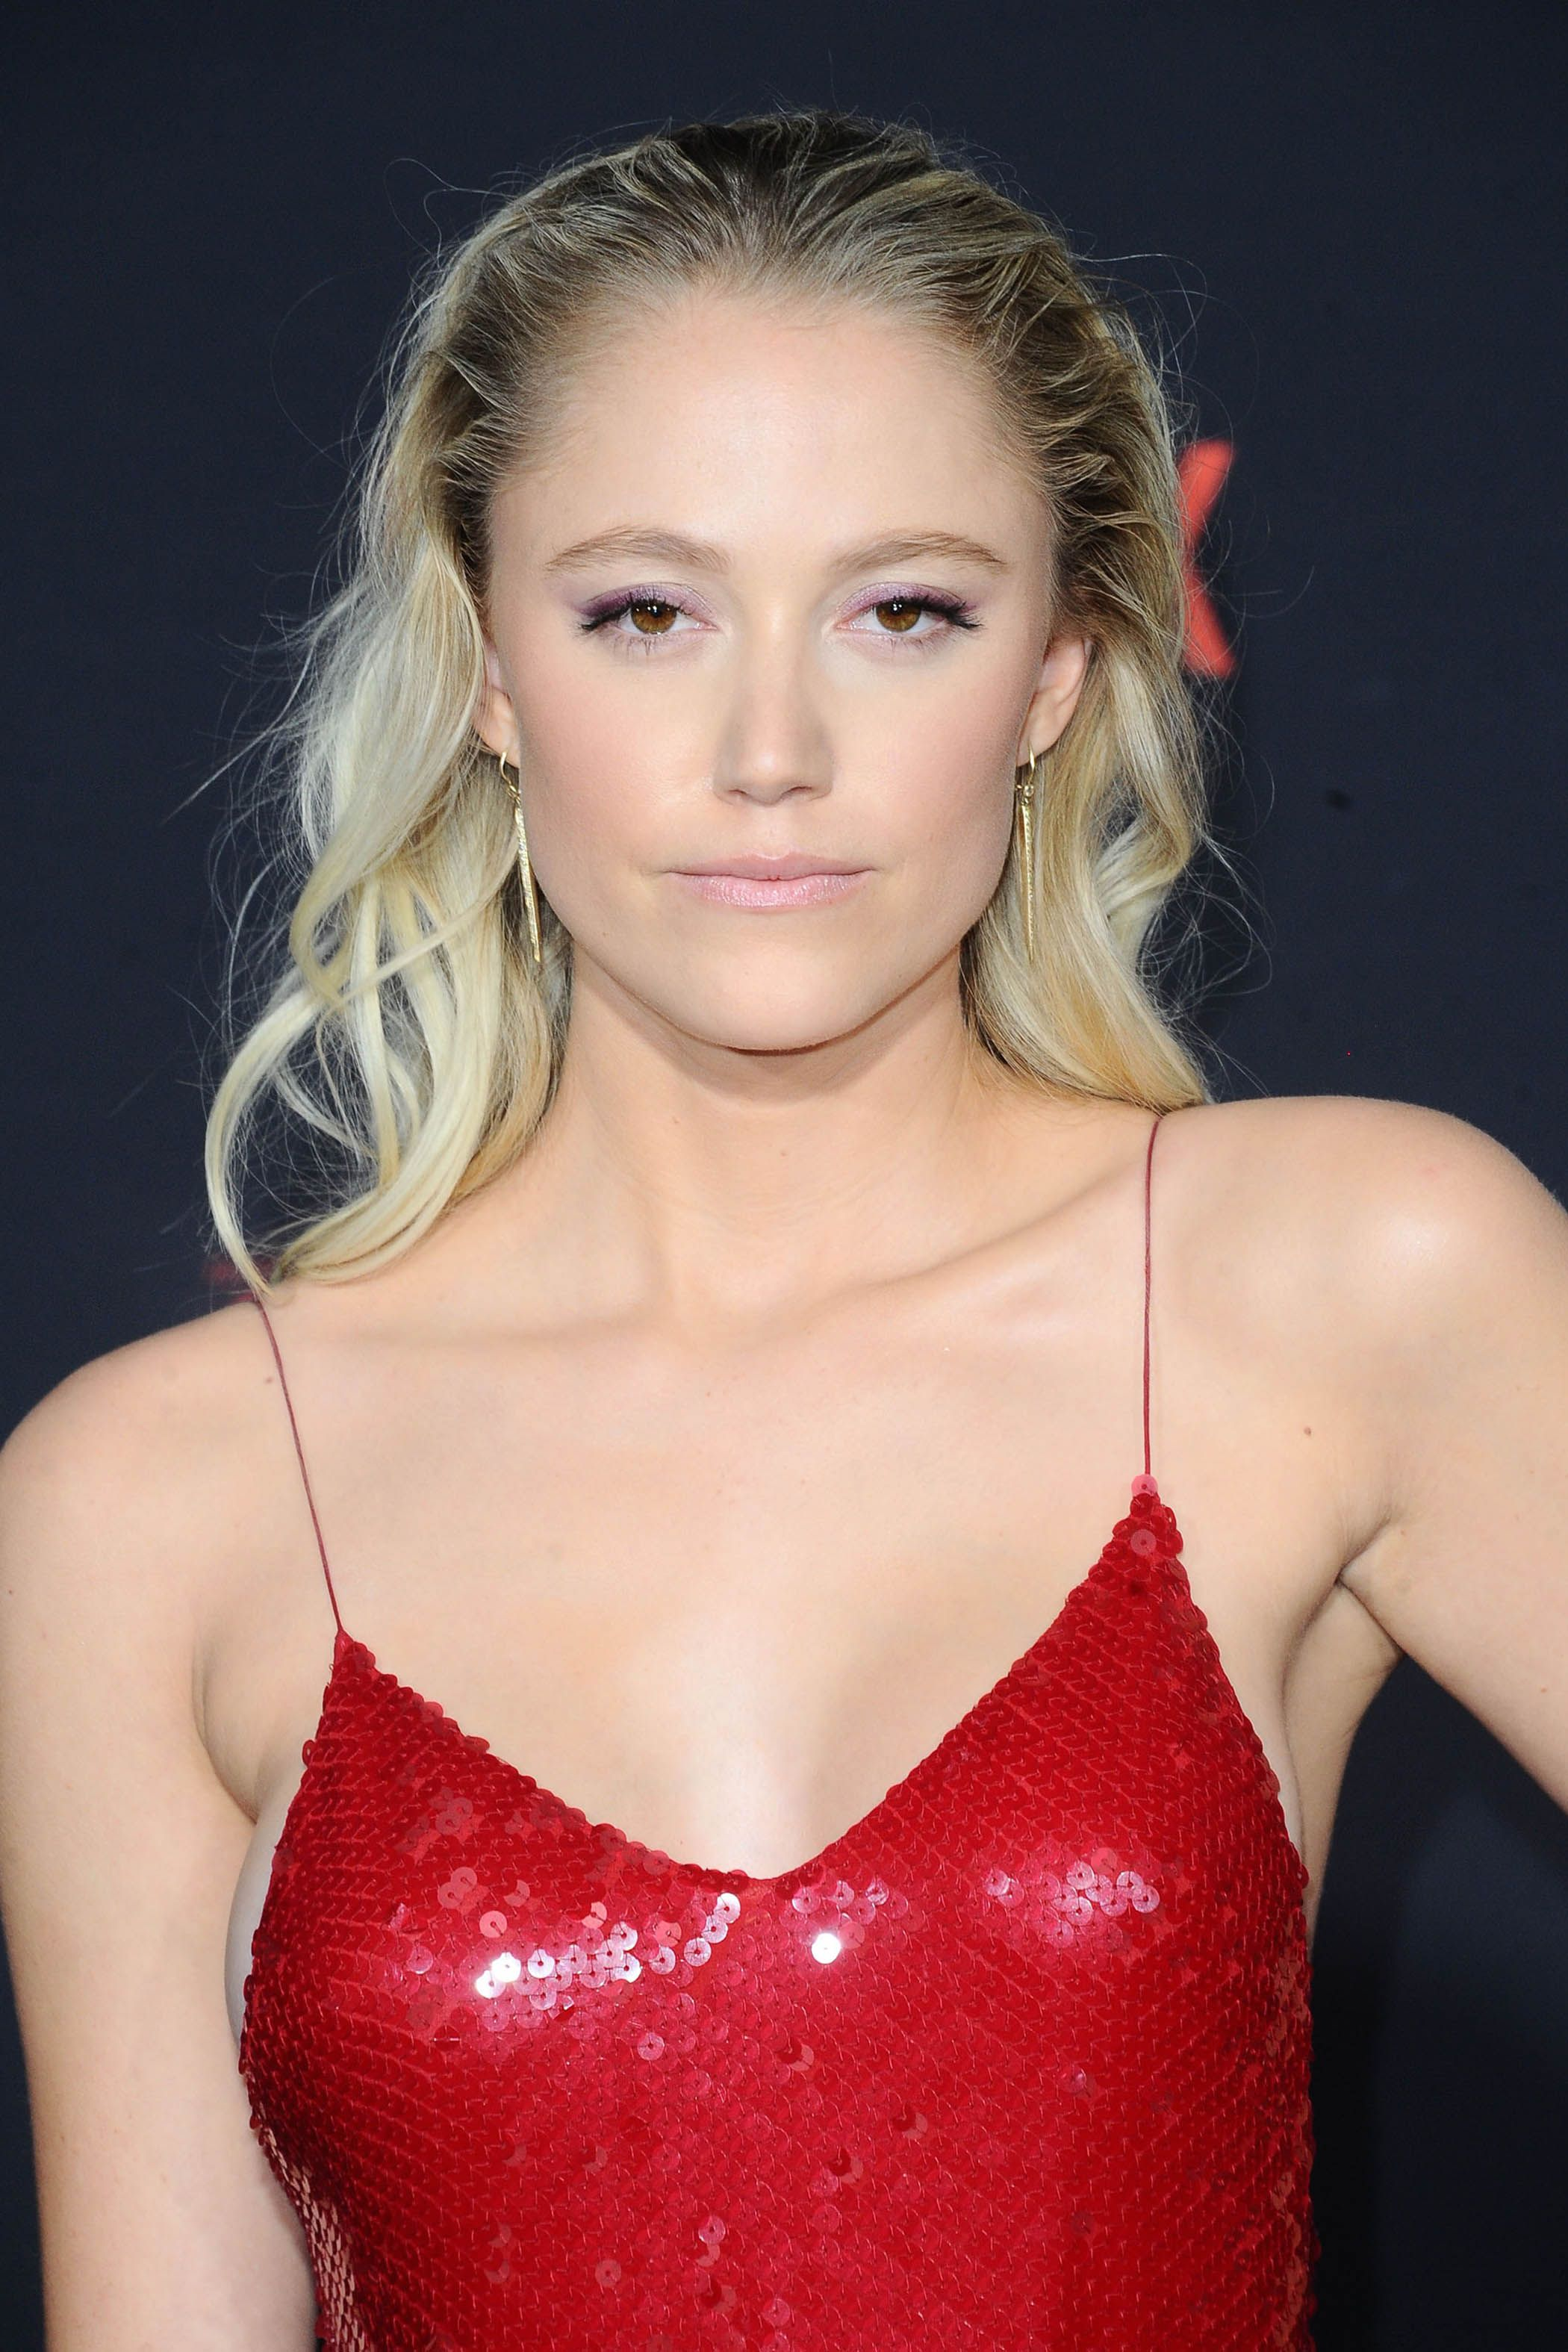 Maika Monroe very hot picture